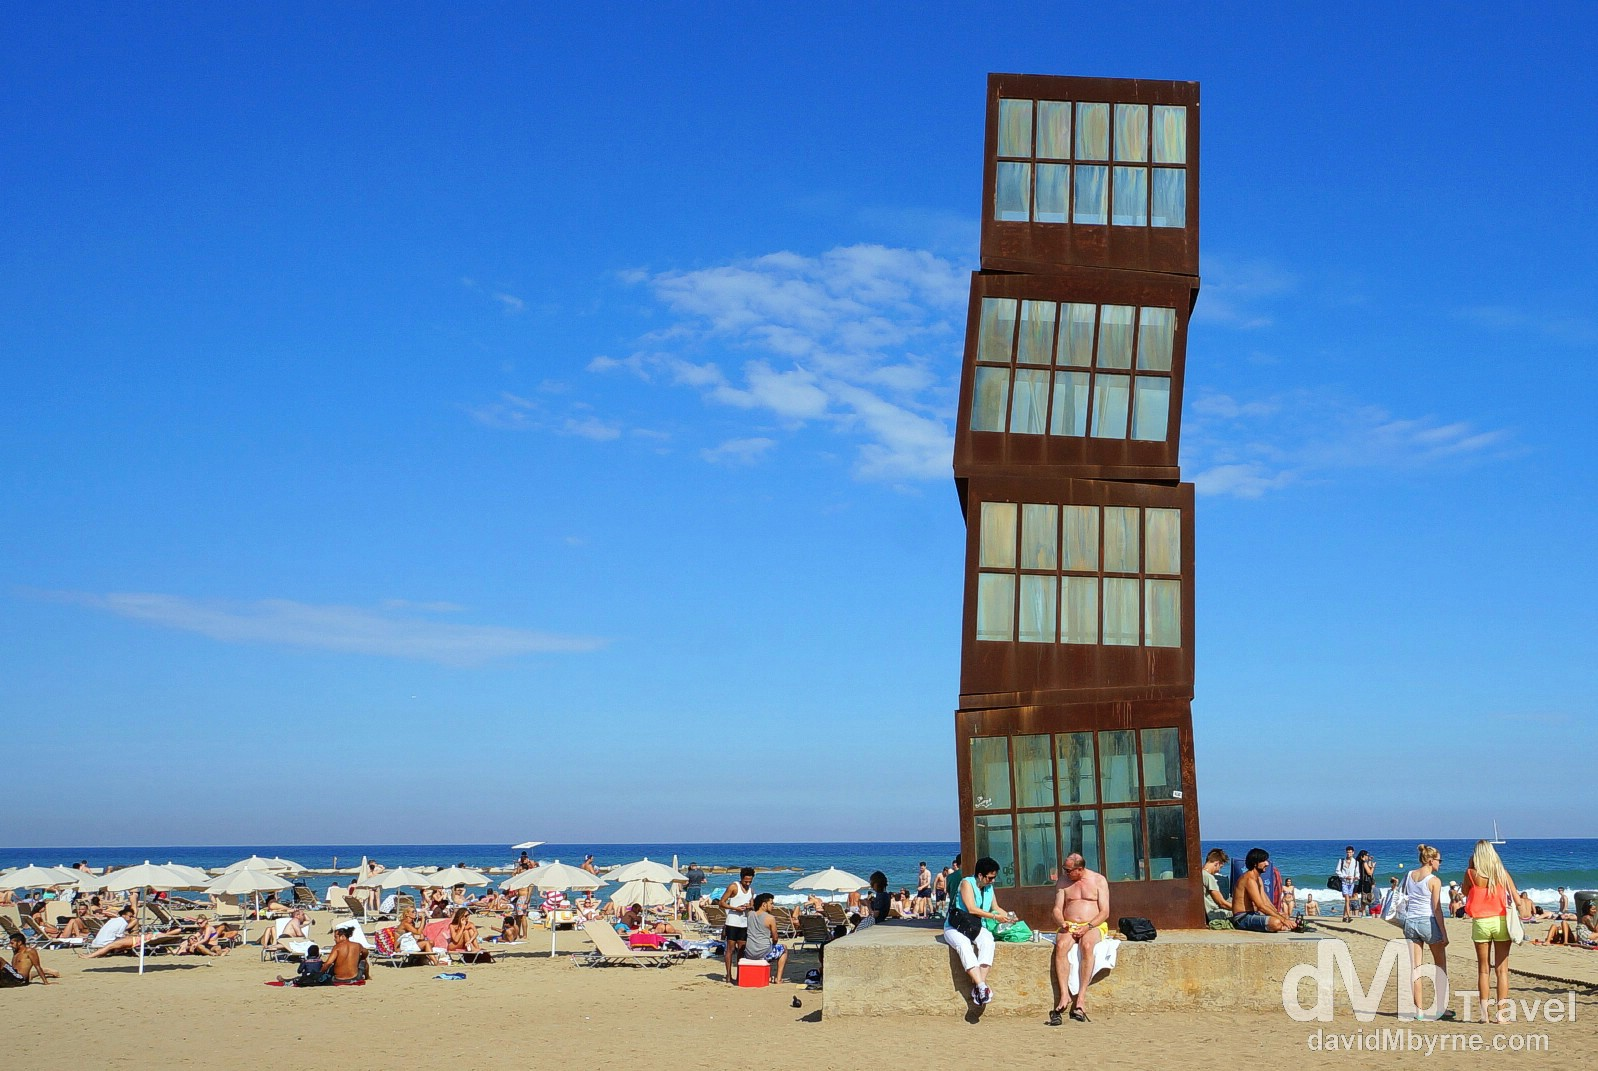 Platja de la Barceloneta, Barcelona, Spain. June 16th, 2014.